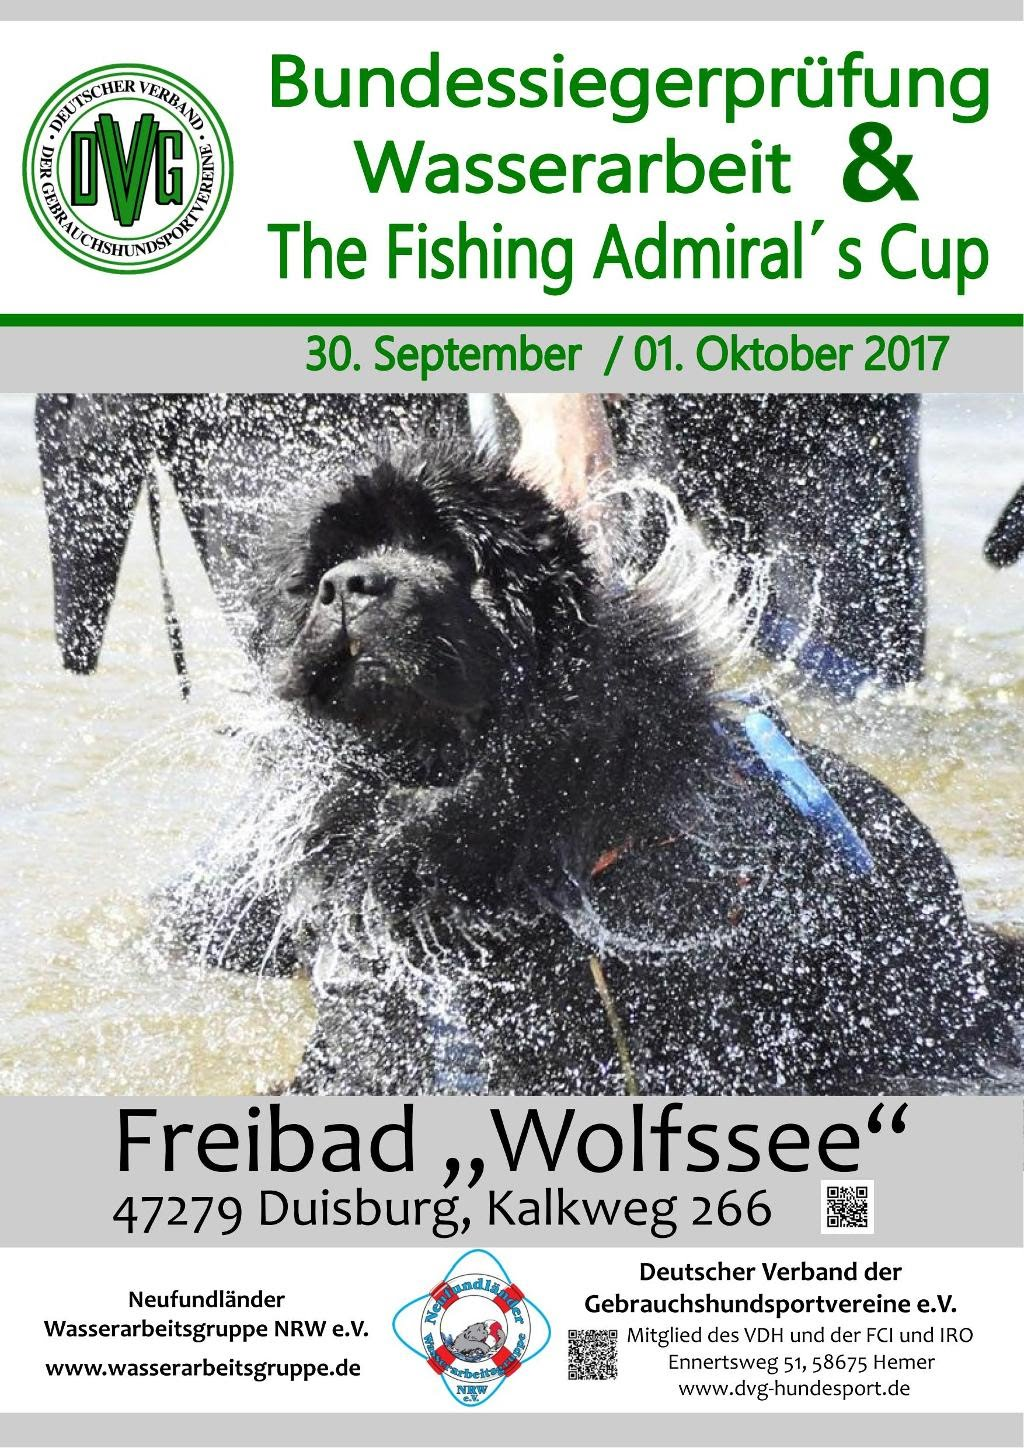 https://sites.google.com/site/bspfishingadmiralscup2017/